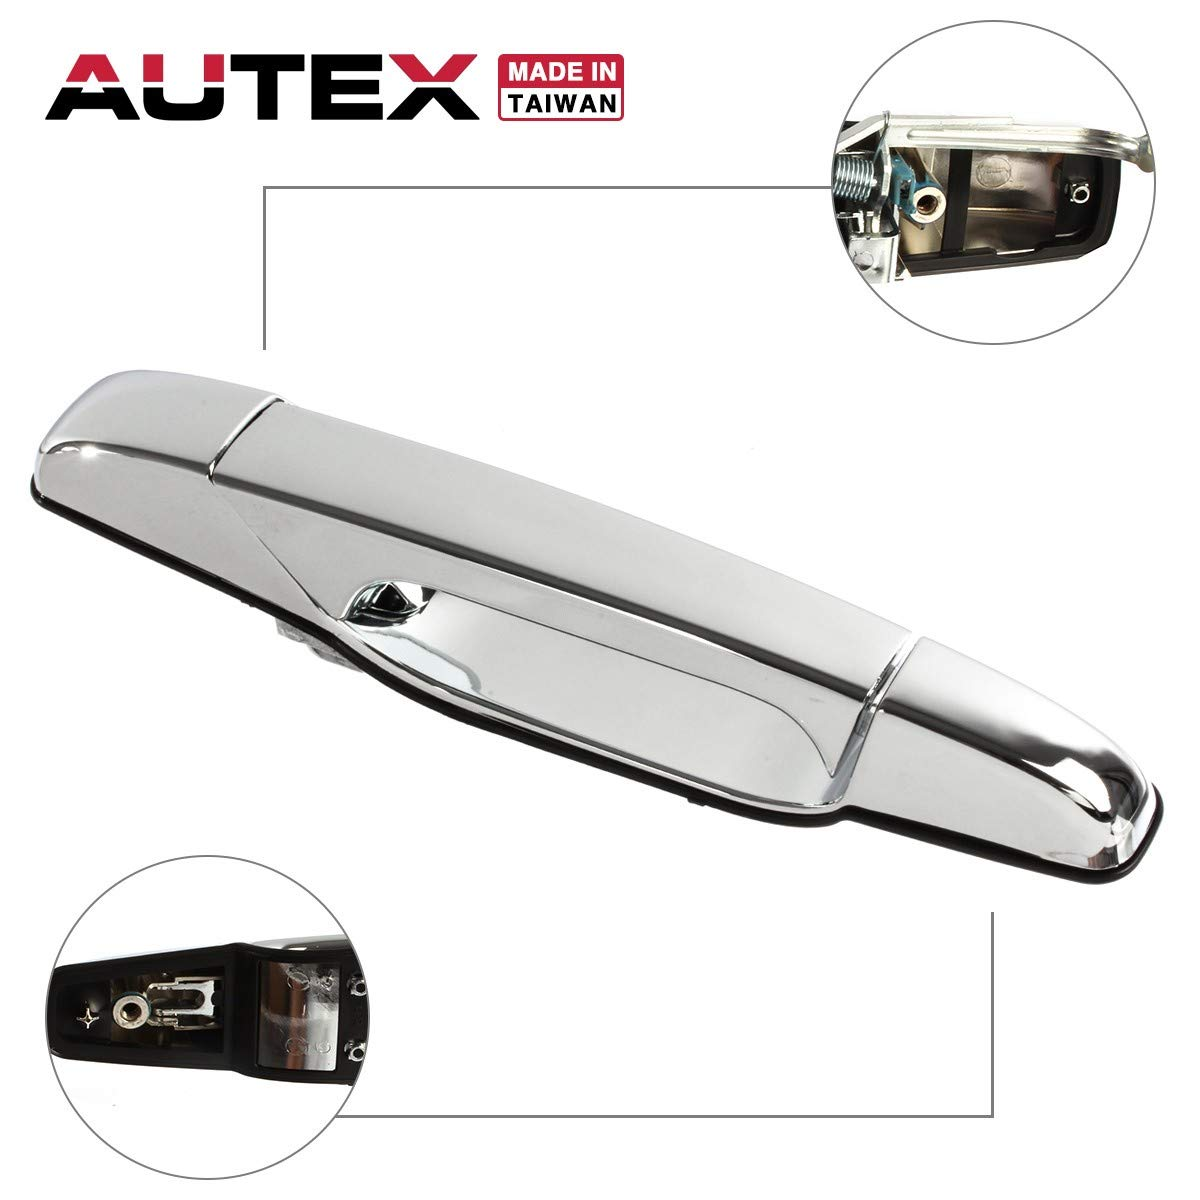 AUTEX Chrome Exterior Door Handle Rear Right Compatible with Cadillac Escalade 07 08 09 2010 2011 2012 2013 2014 Chevy Silverado GMC Sierra 1500 2500 3500 Chevy Tahoe GMC Yukon Door Handle 80547 PartsSquare